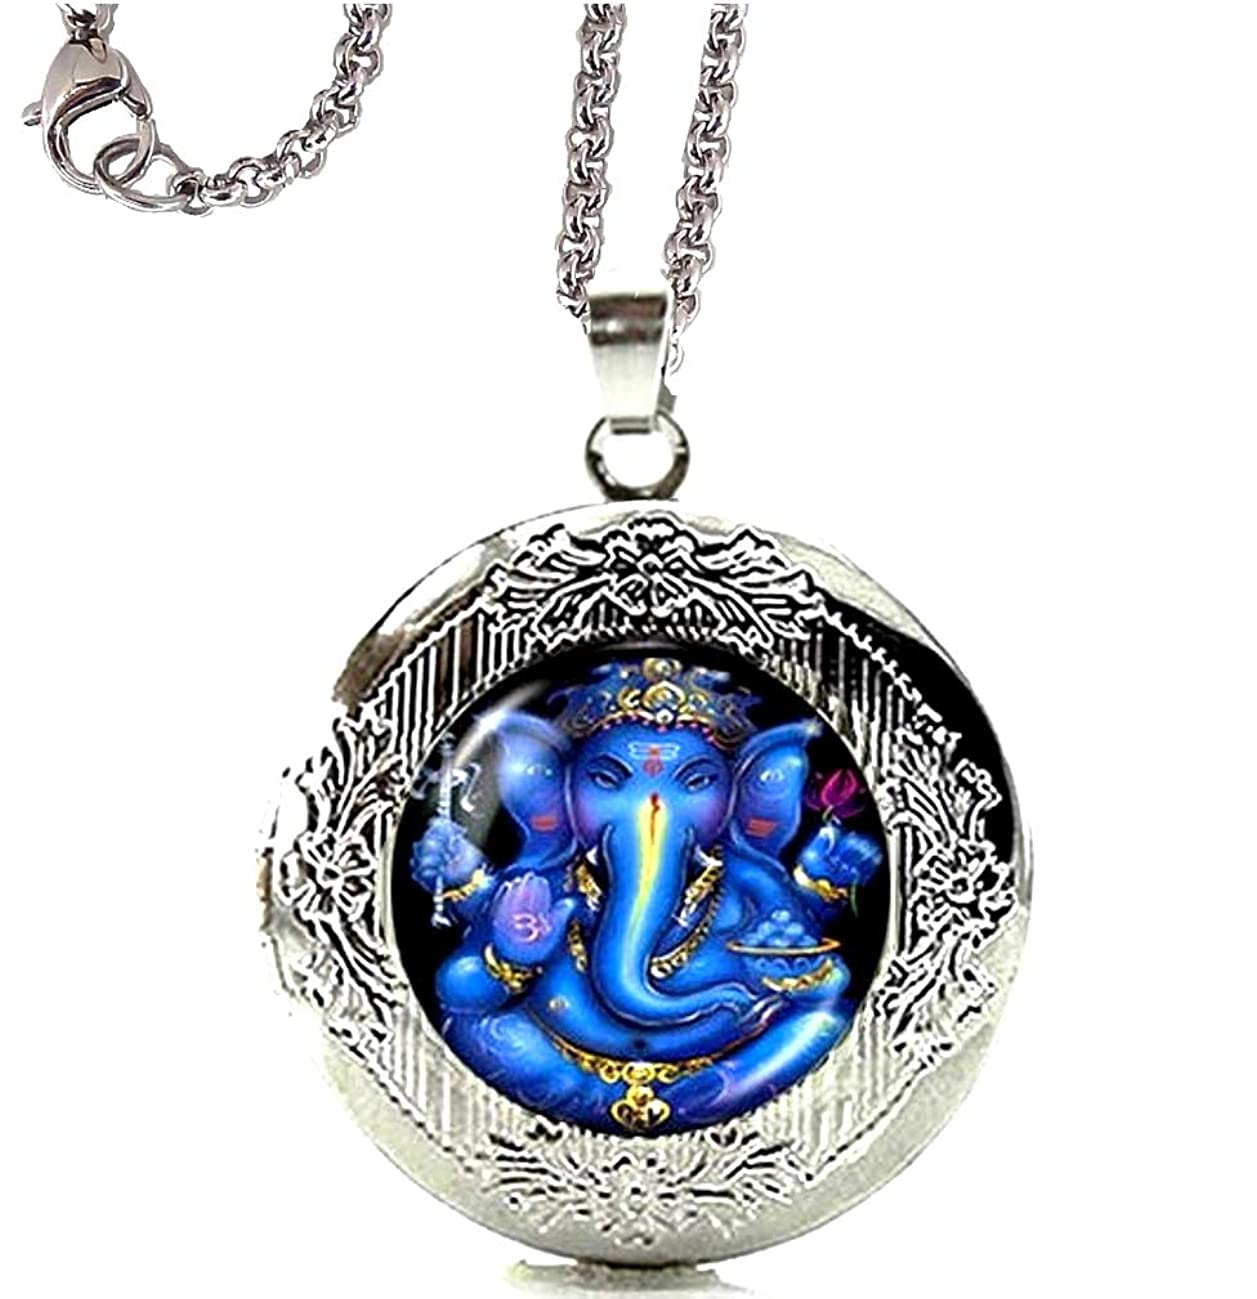 DianaL Boutique Silver Tone Lord Ganesh Ganesha Locket Pendant Necklace with 24